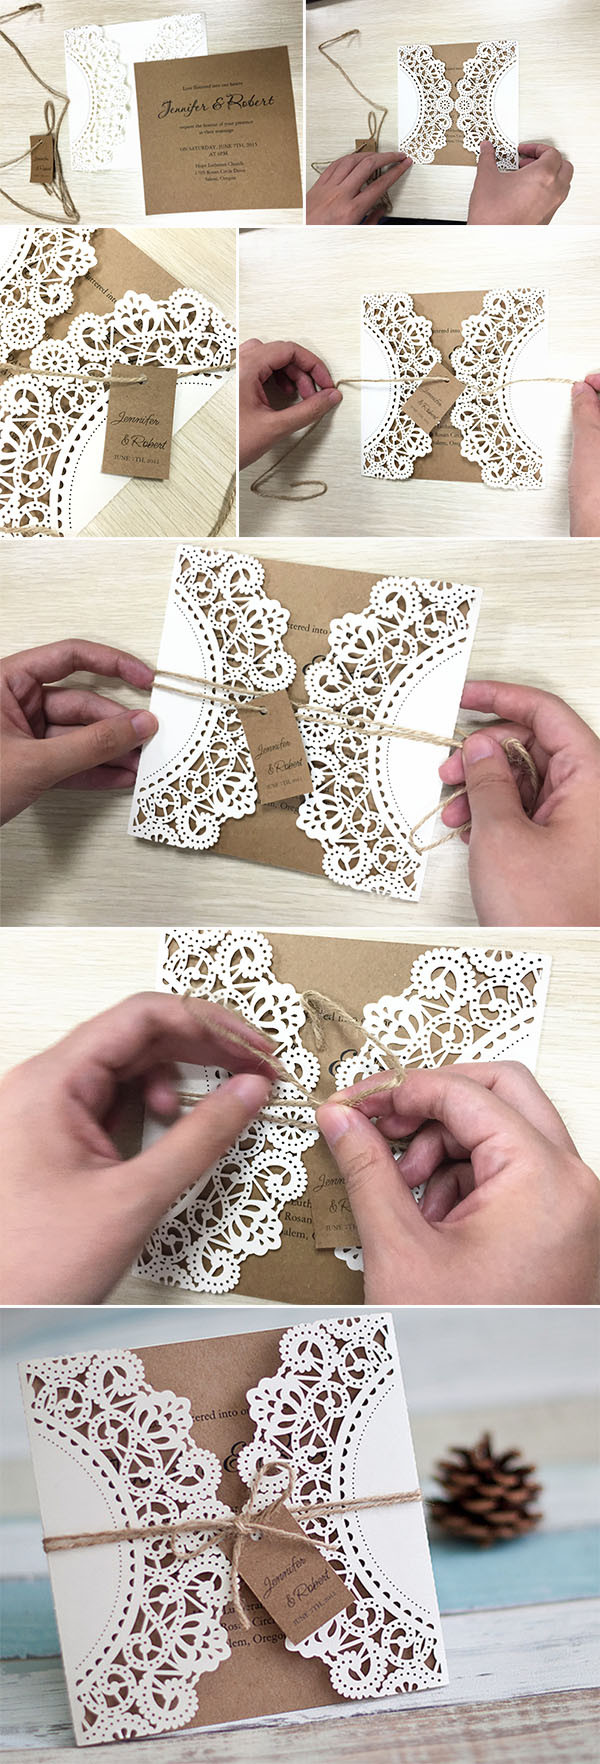 Best ideas about DIY Wedding Invites . Save or Pin DIY Wedding Ideas 10 Perfect Ways To Use Paper For Weddings Now.